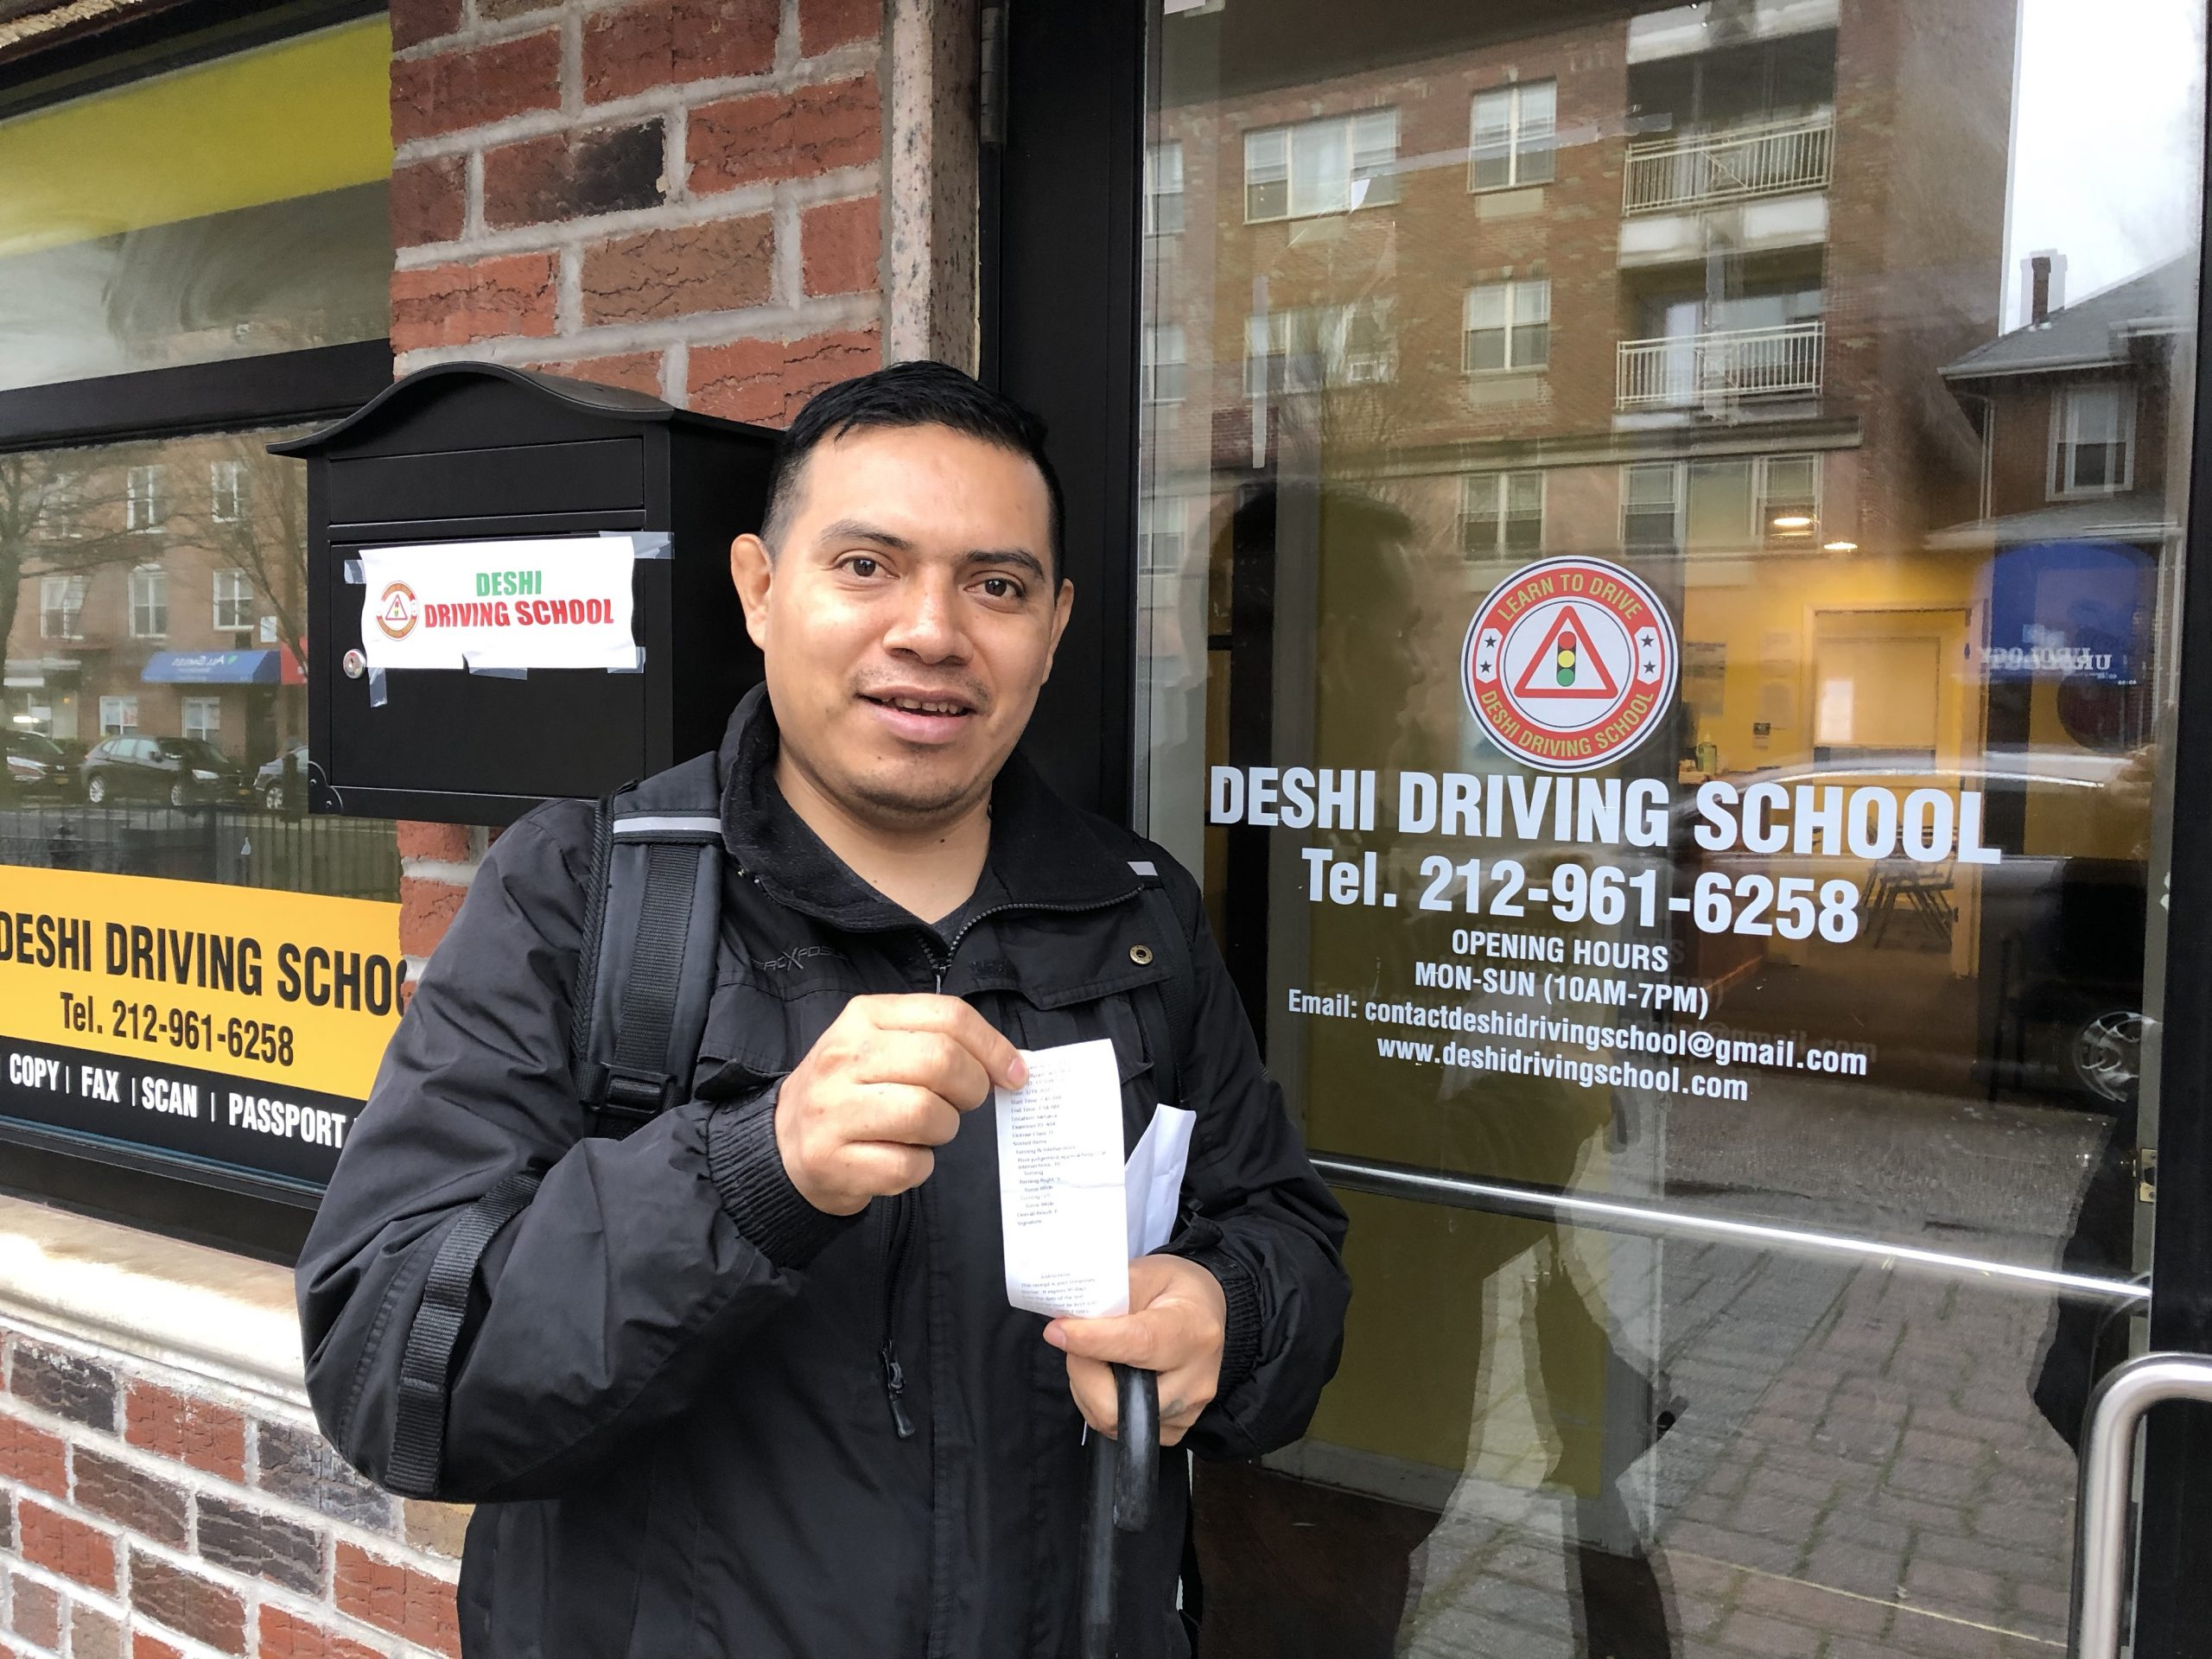 Deshi Driving School